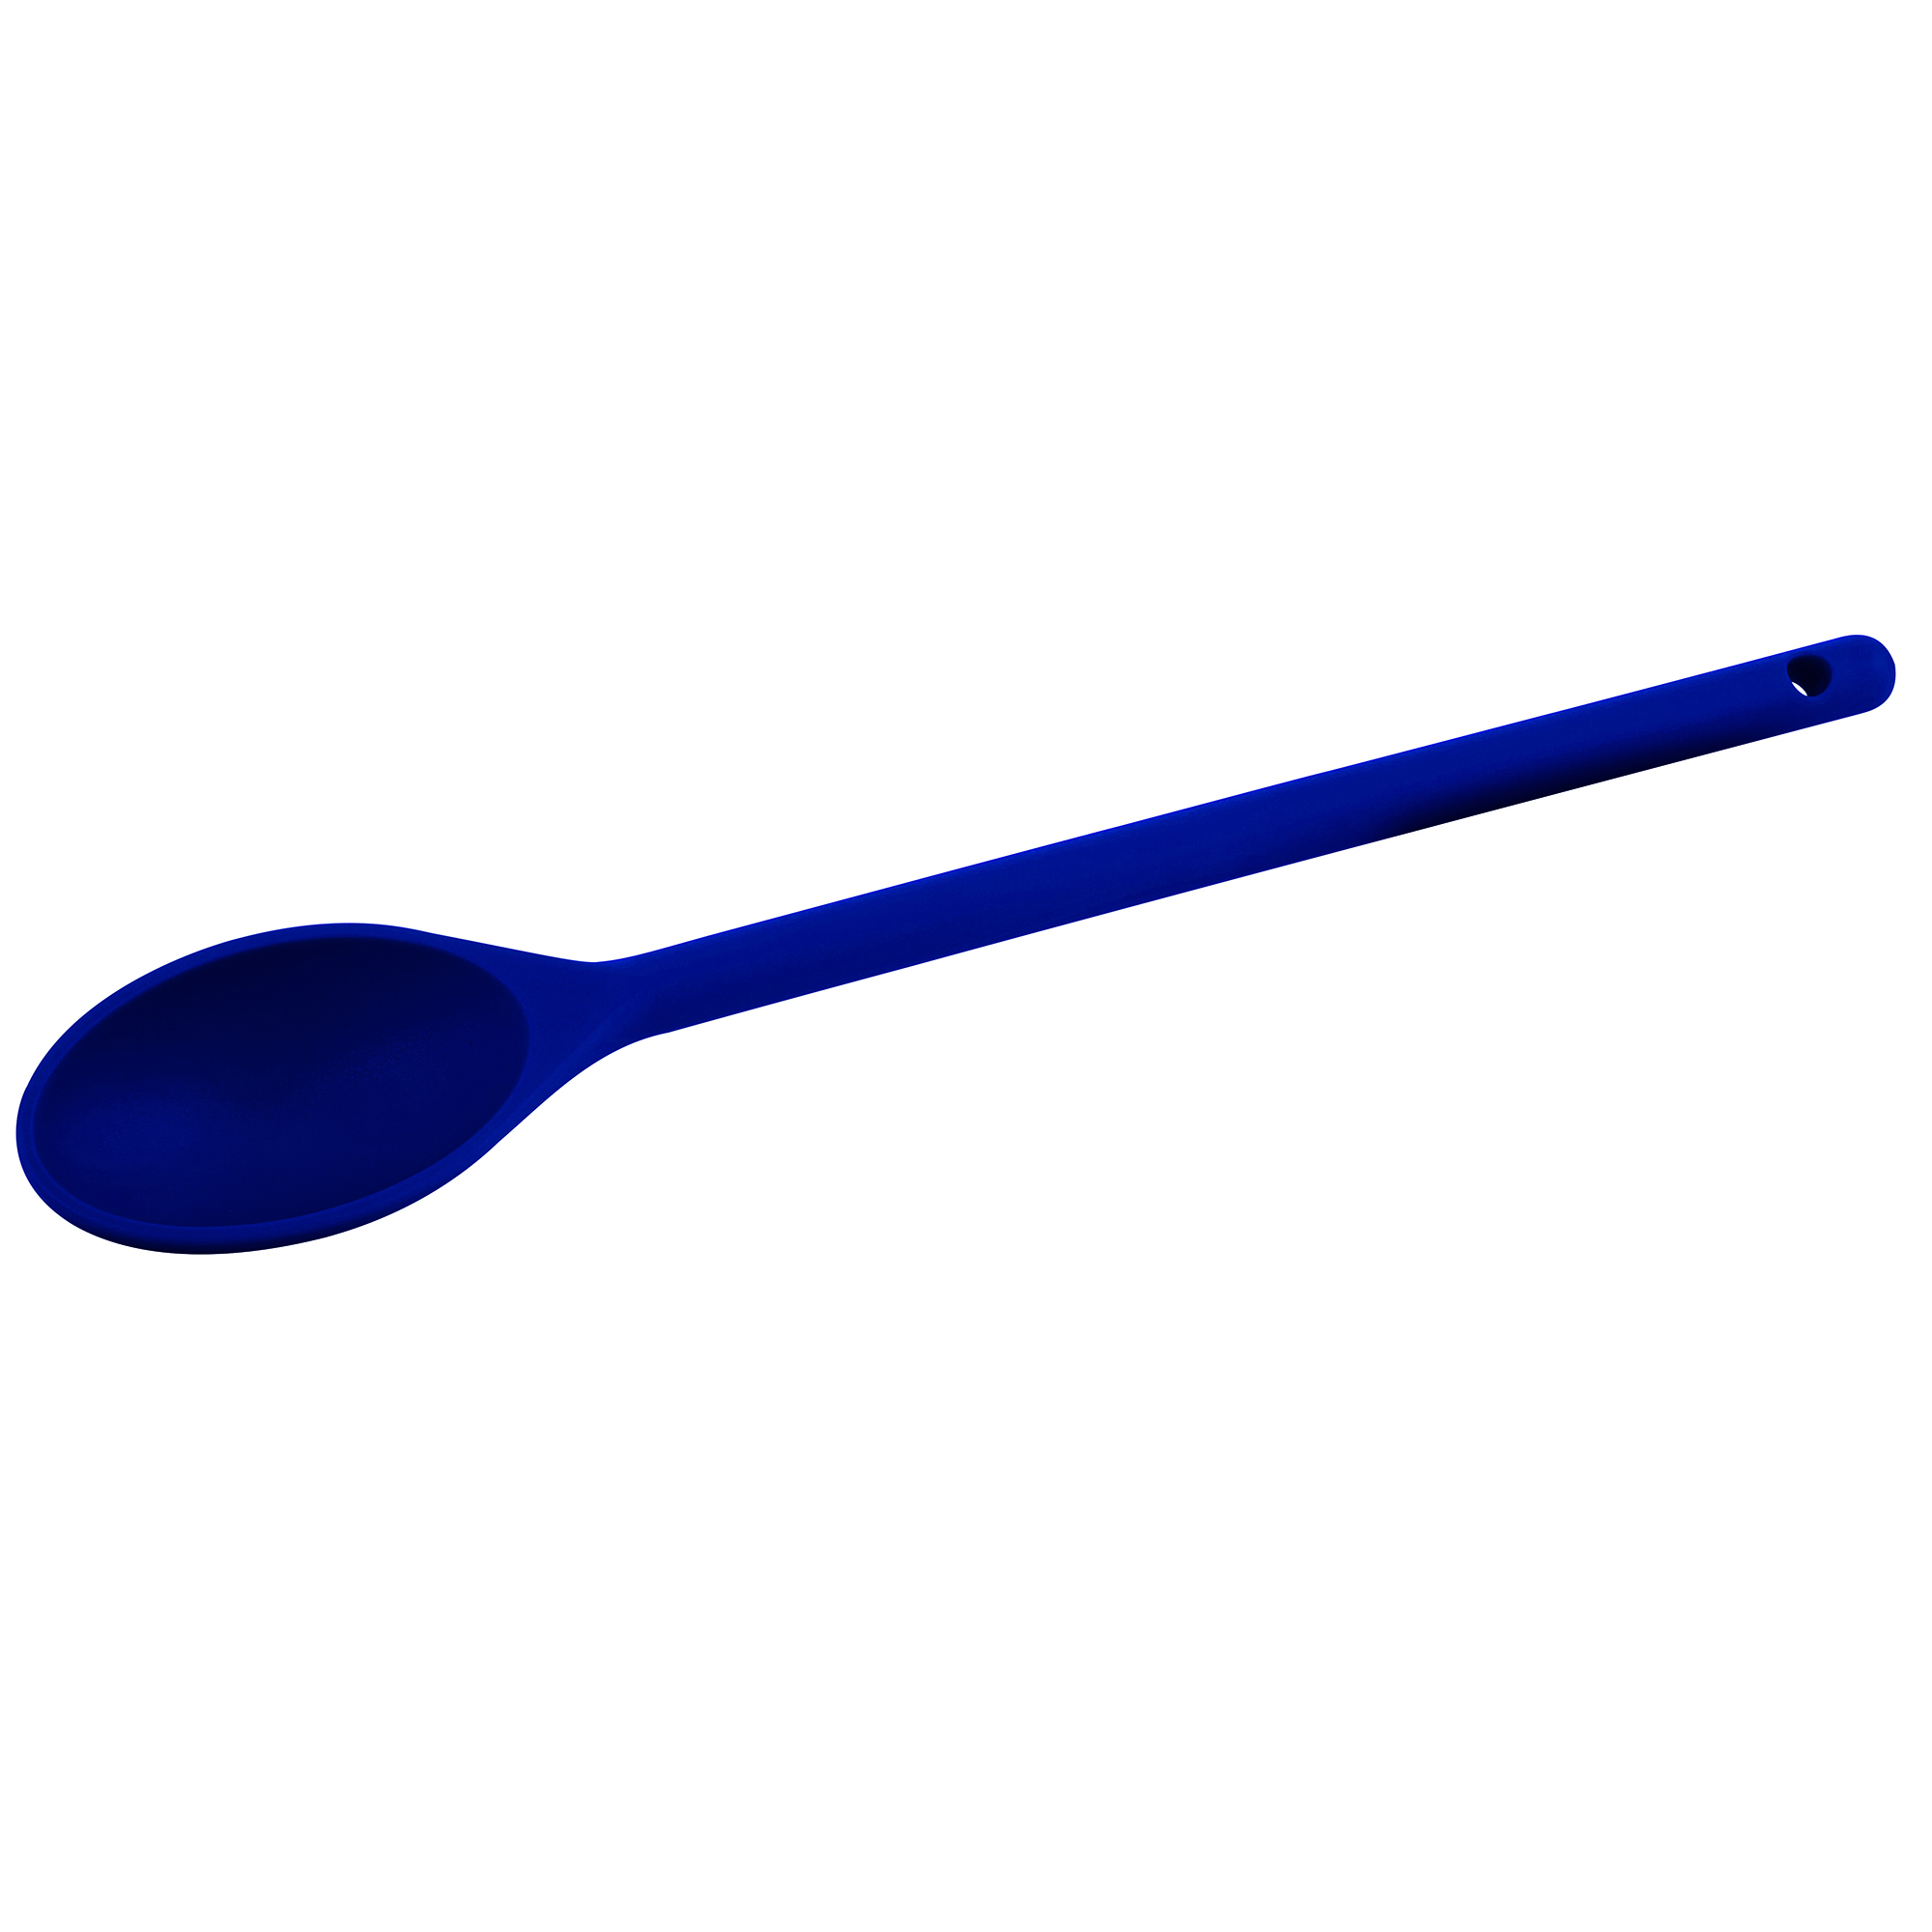 Winco NS-15B serving spoon, solid